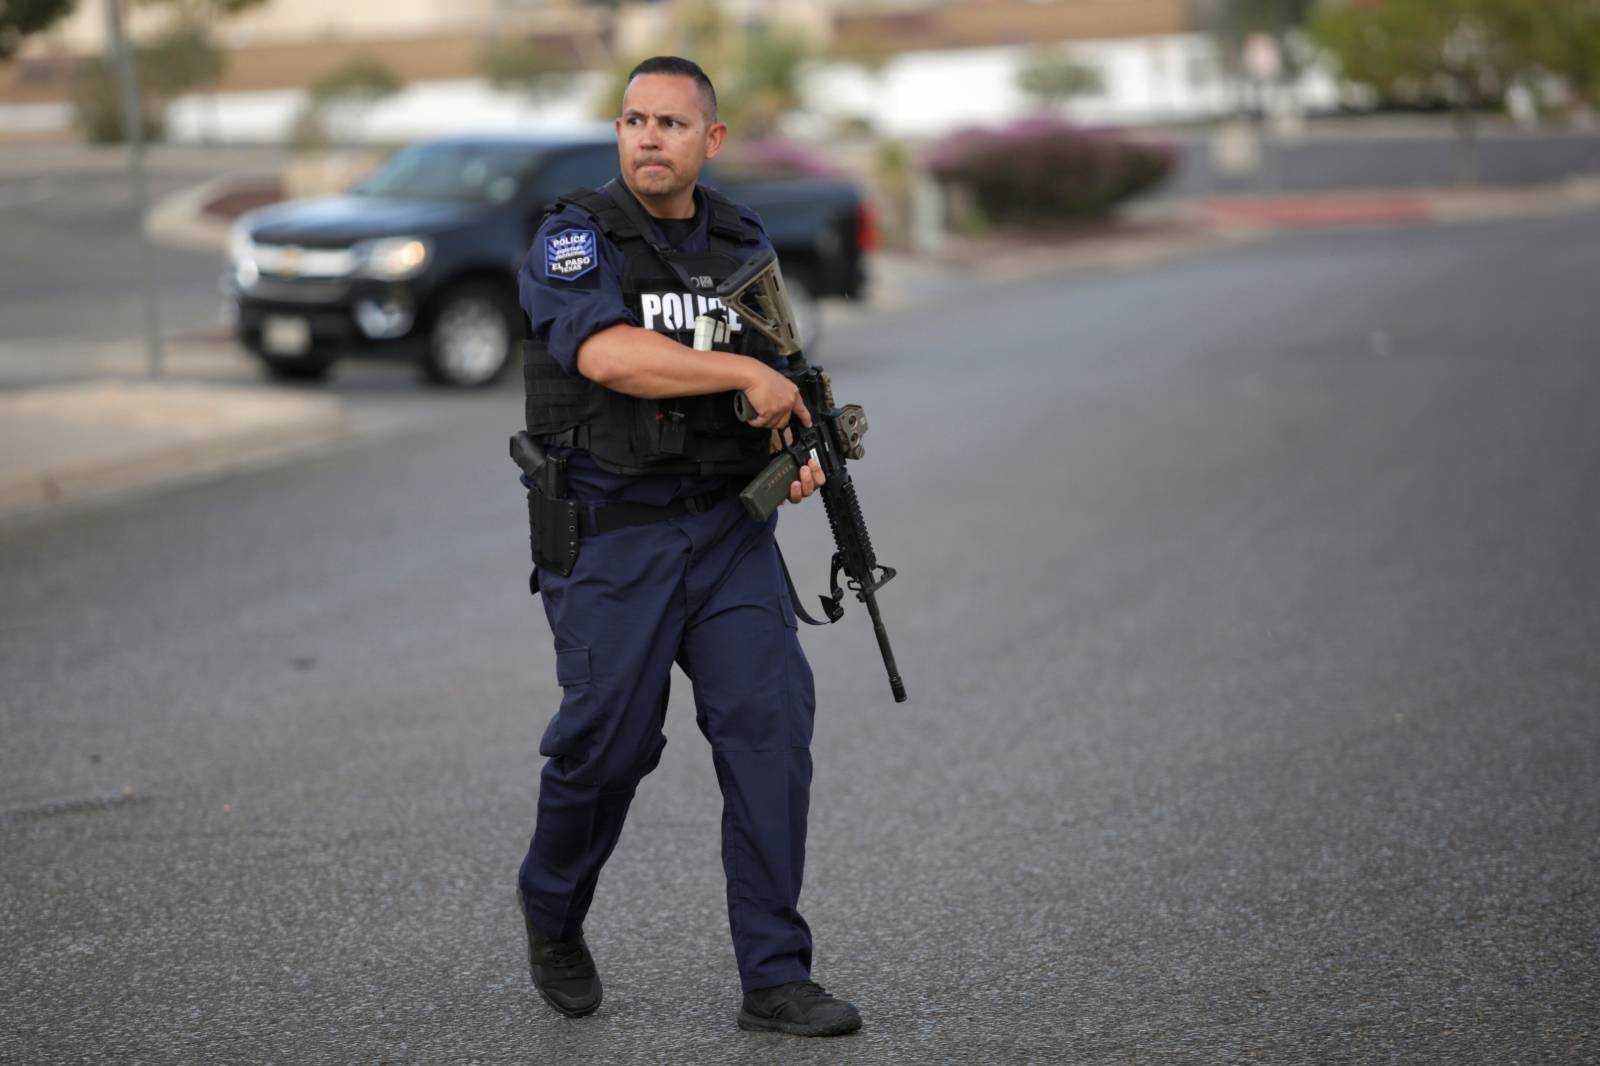 A police officer is seen after a mass shooting at a Walmart in El Paso